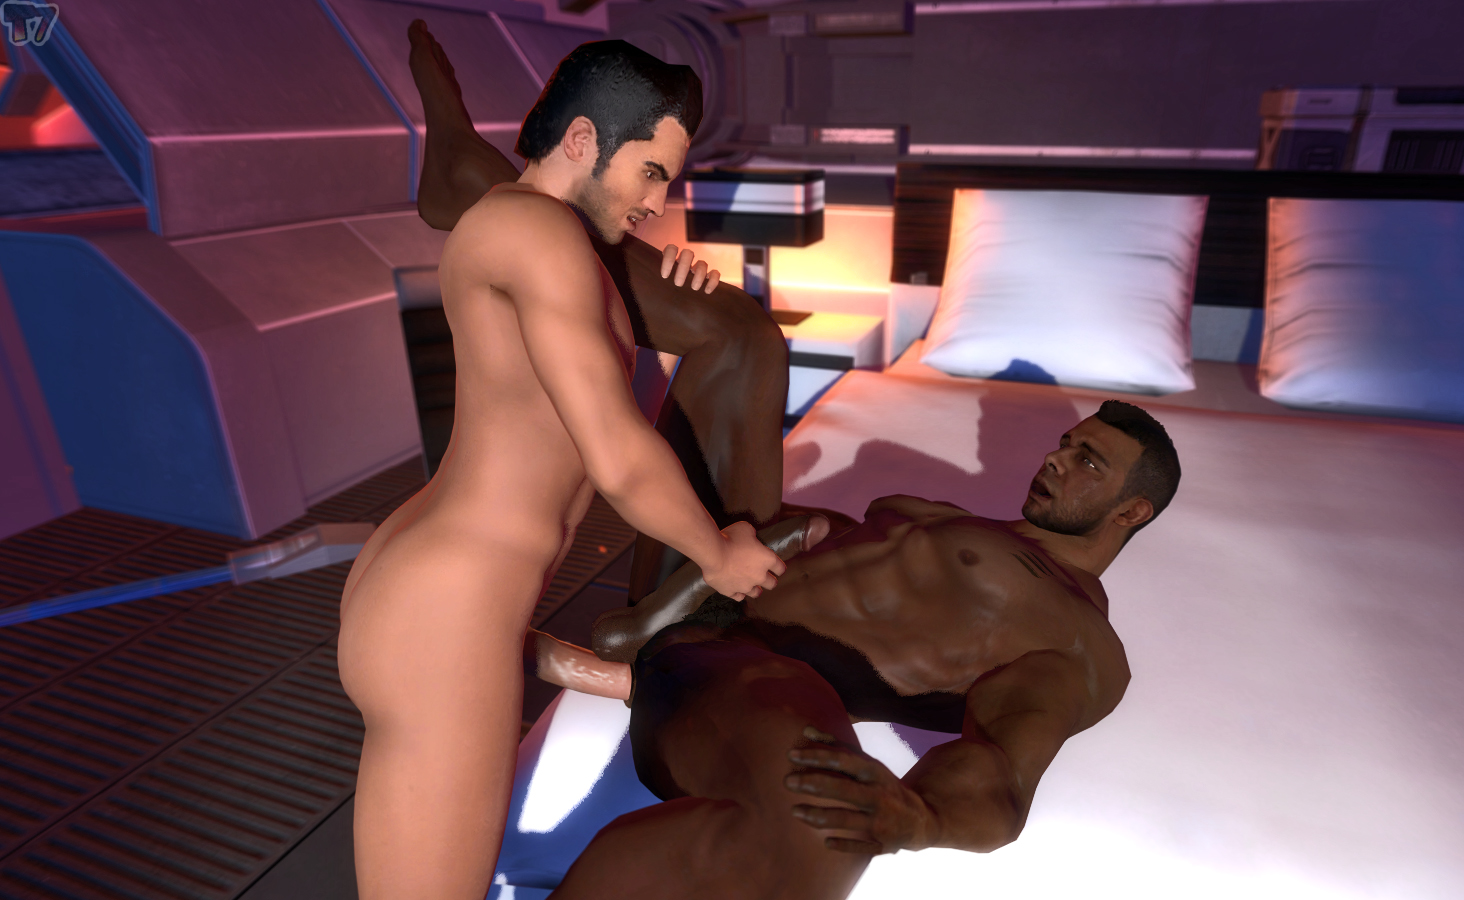 Mass effect 3 pc shaved nude mode porn scene